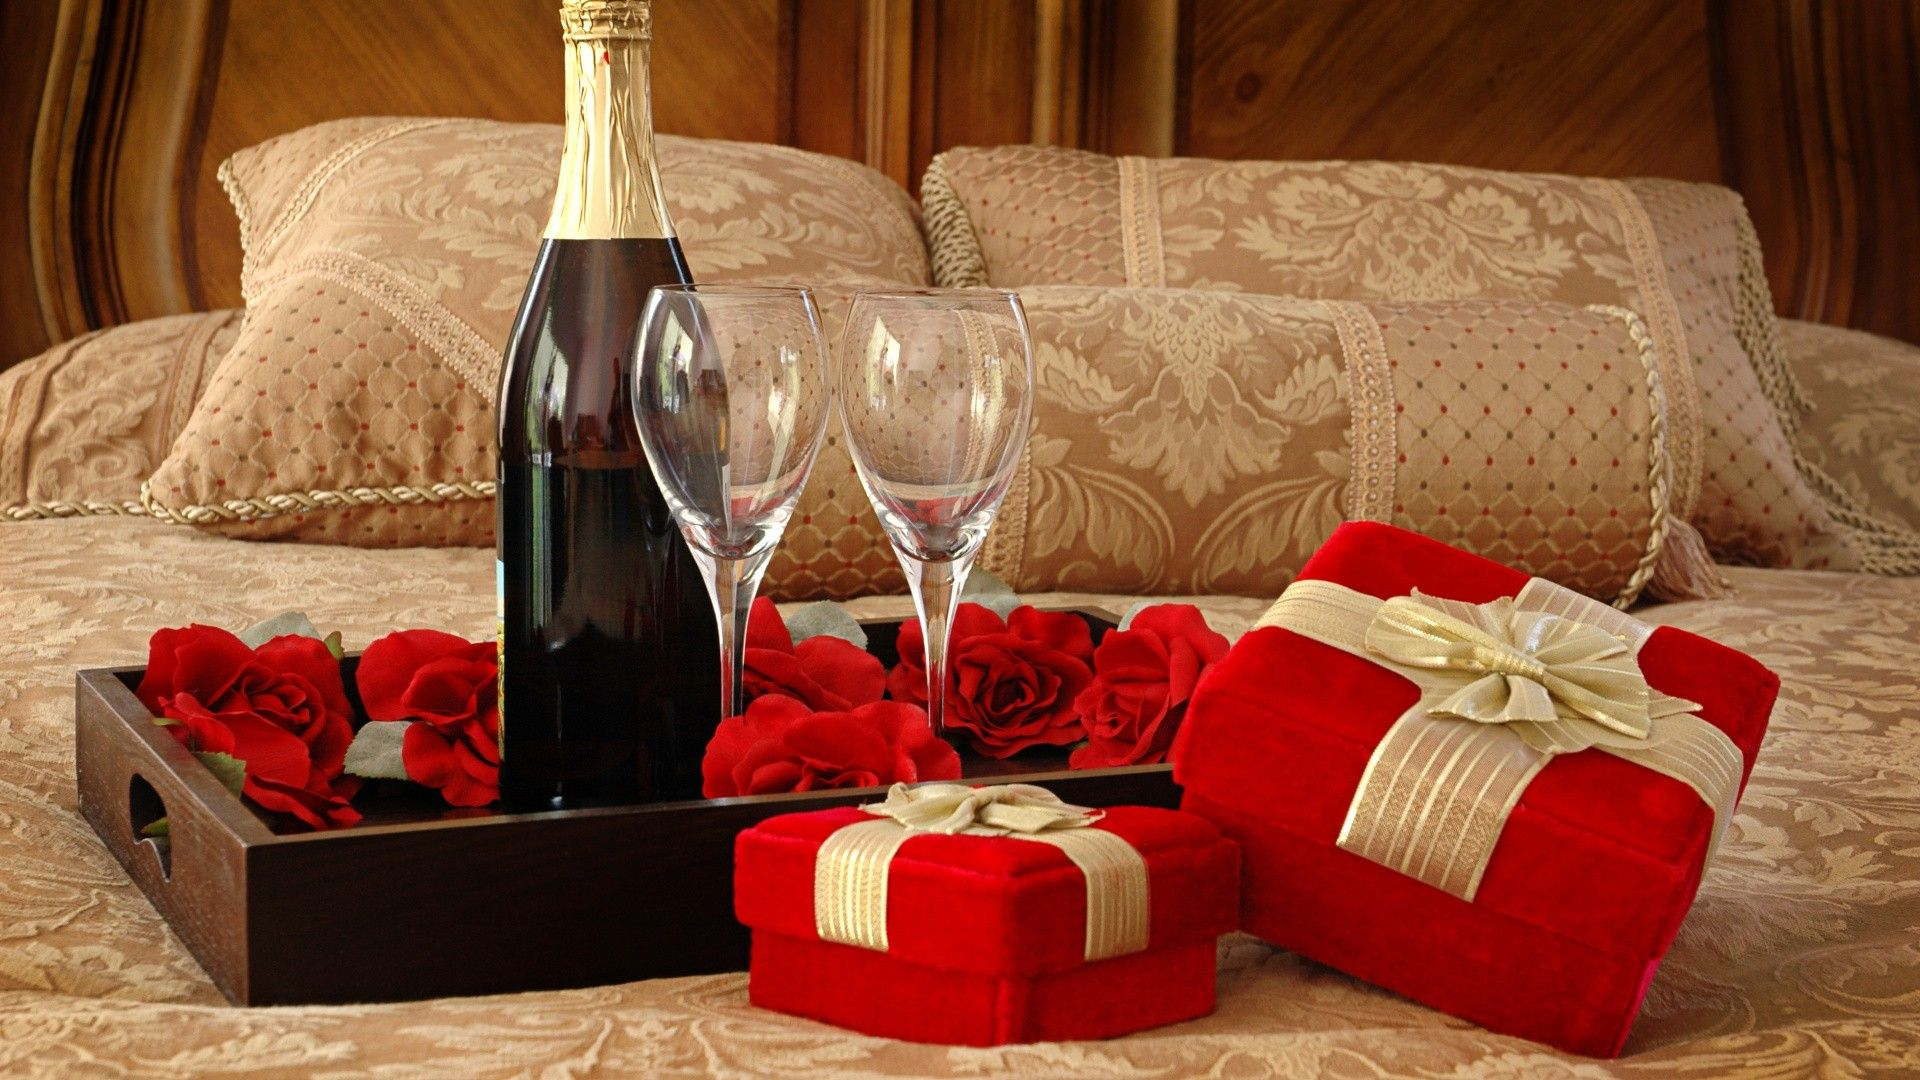 Romantic Birthday Gifts For Girlfriend India